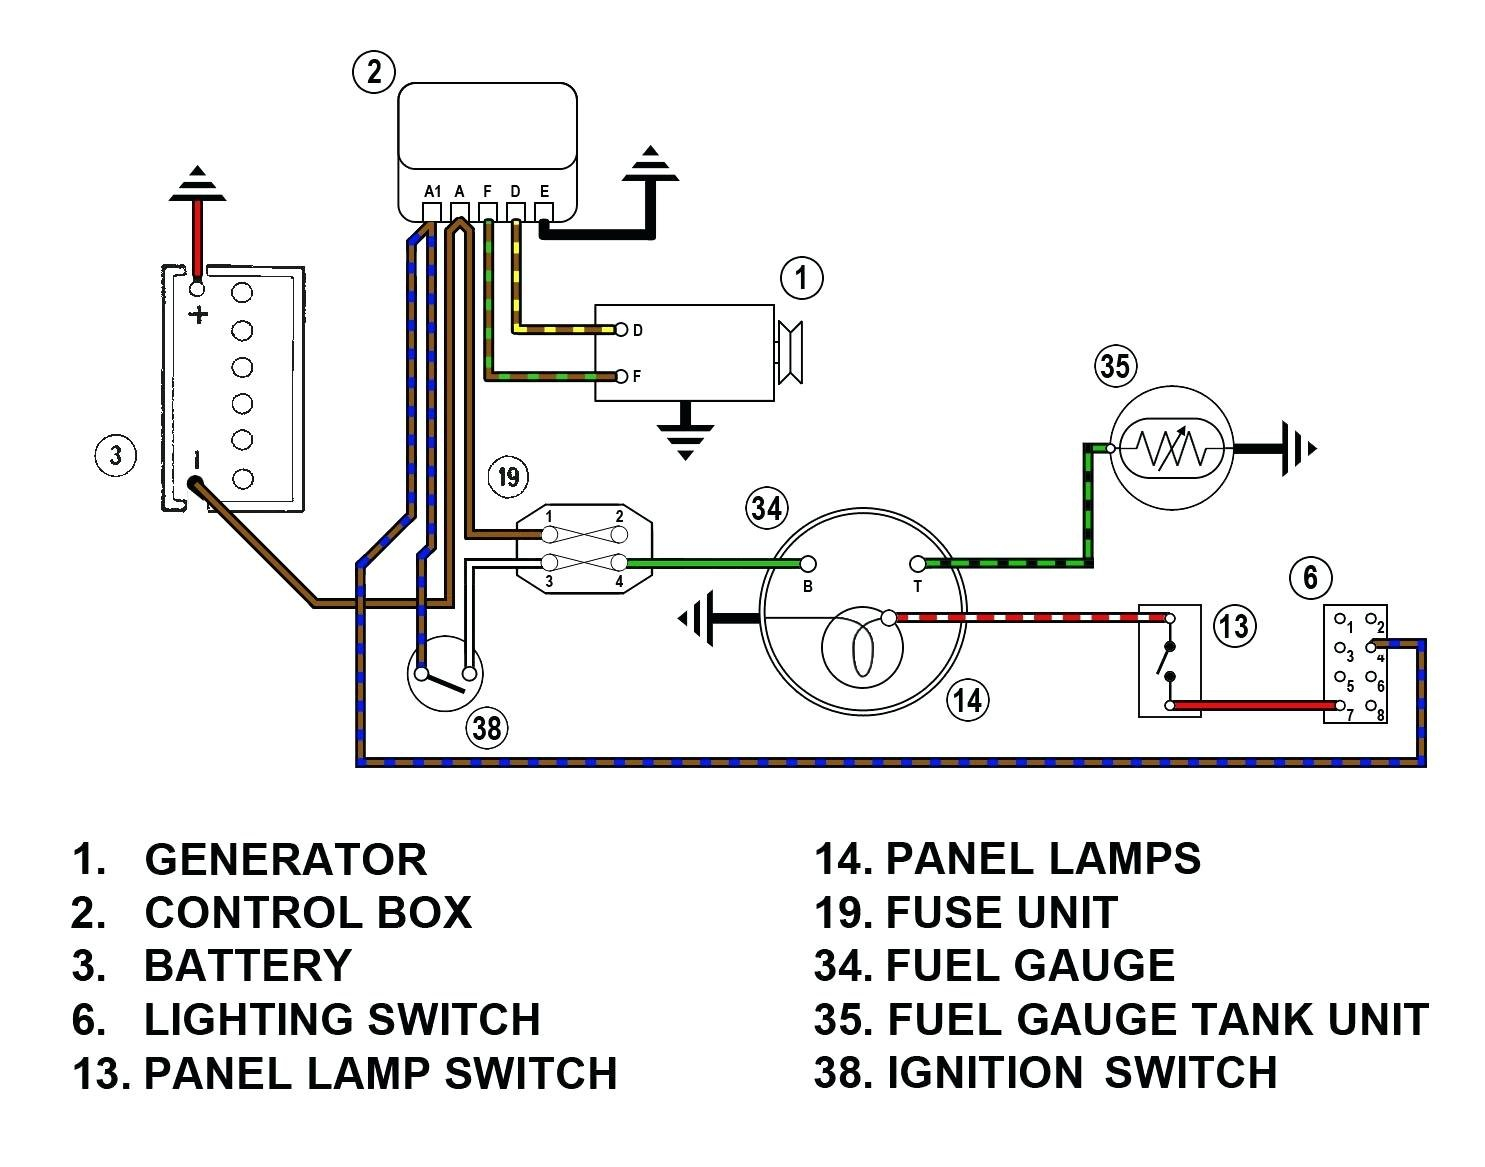 Lighting Control Panel Wiring Diagram Collection Electrical Control on lighting control schematics, lighting contactor with photocell wiring-diagram, lighting control panel system, lighting contactor panel, lighting control panel relay, lighting contactor schematic diagram, main electric panel diagram, light relay wire diagram, how does air conditioning work diagram,